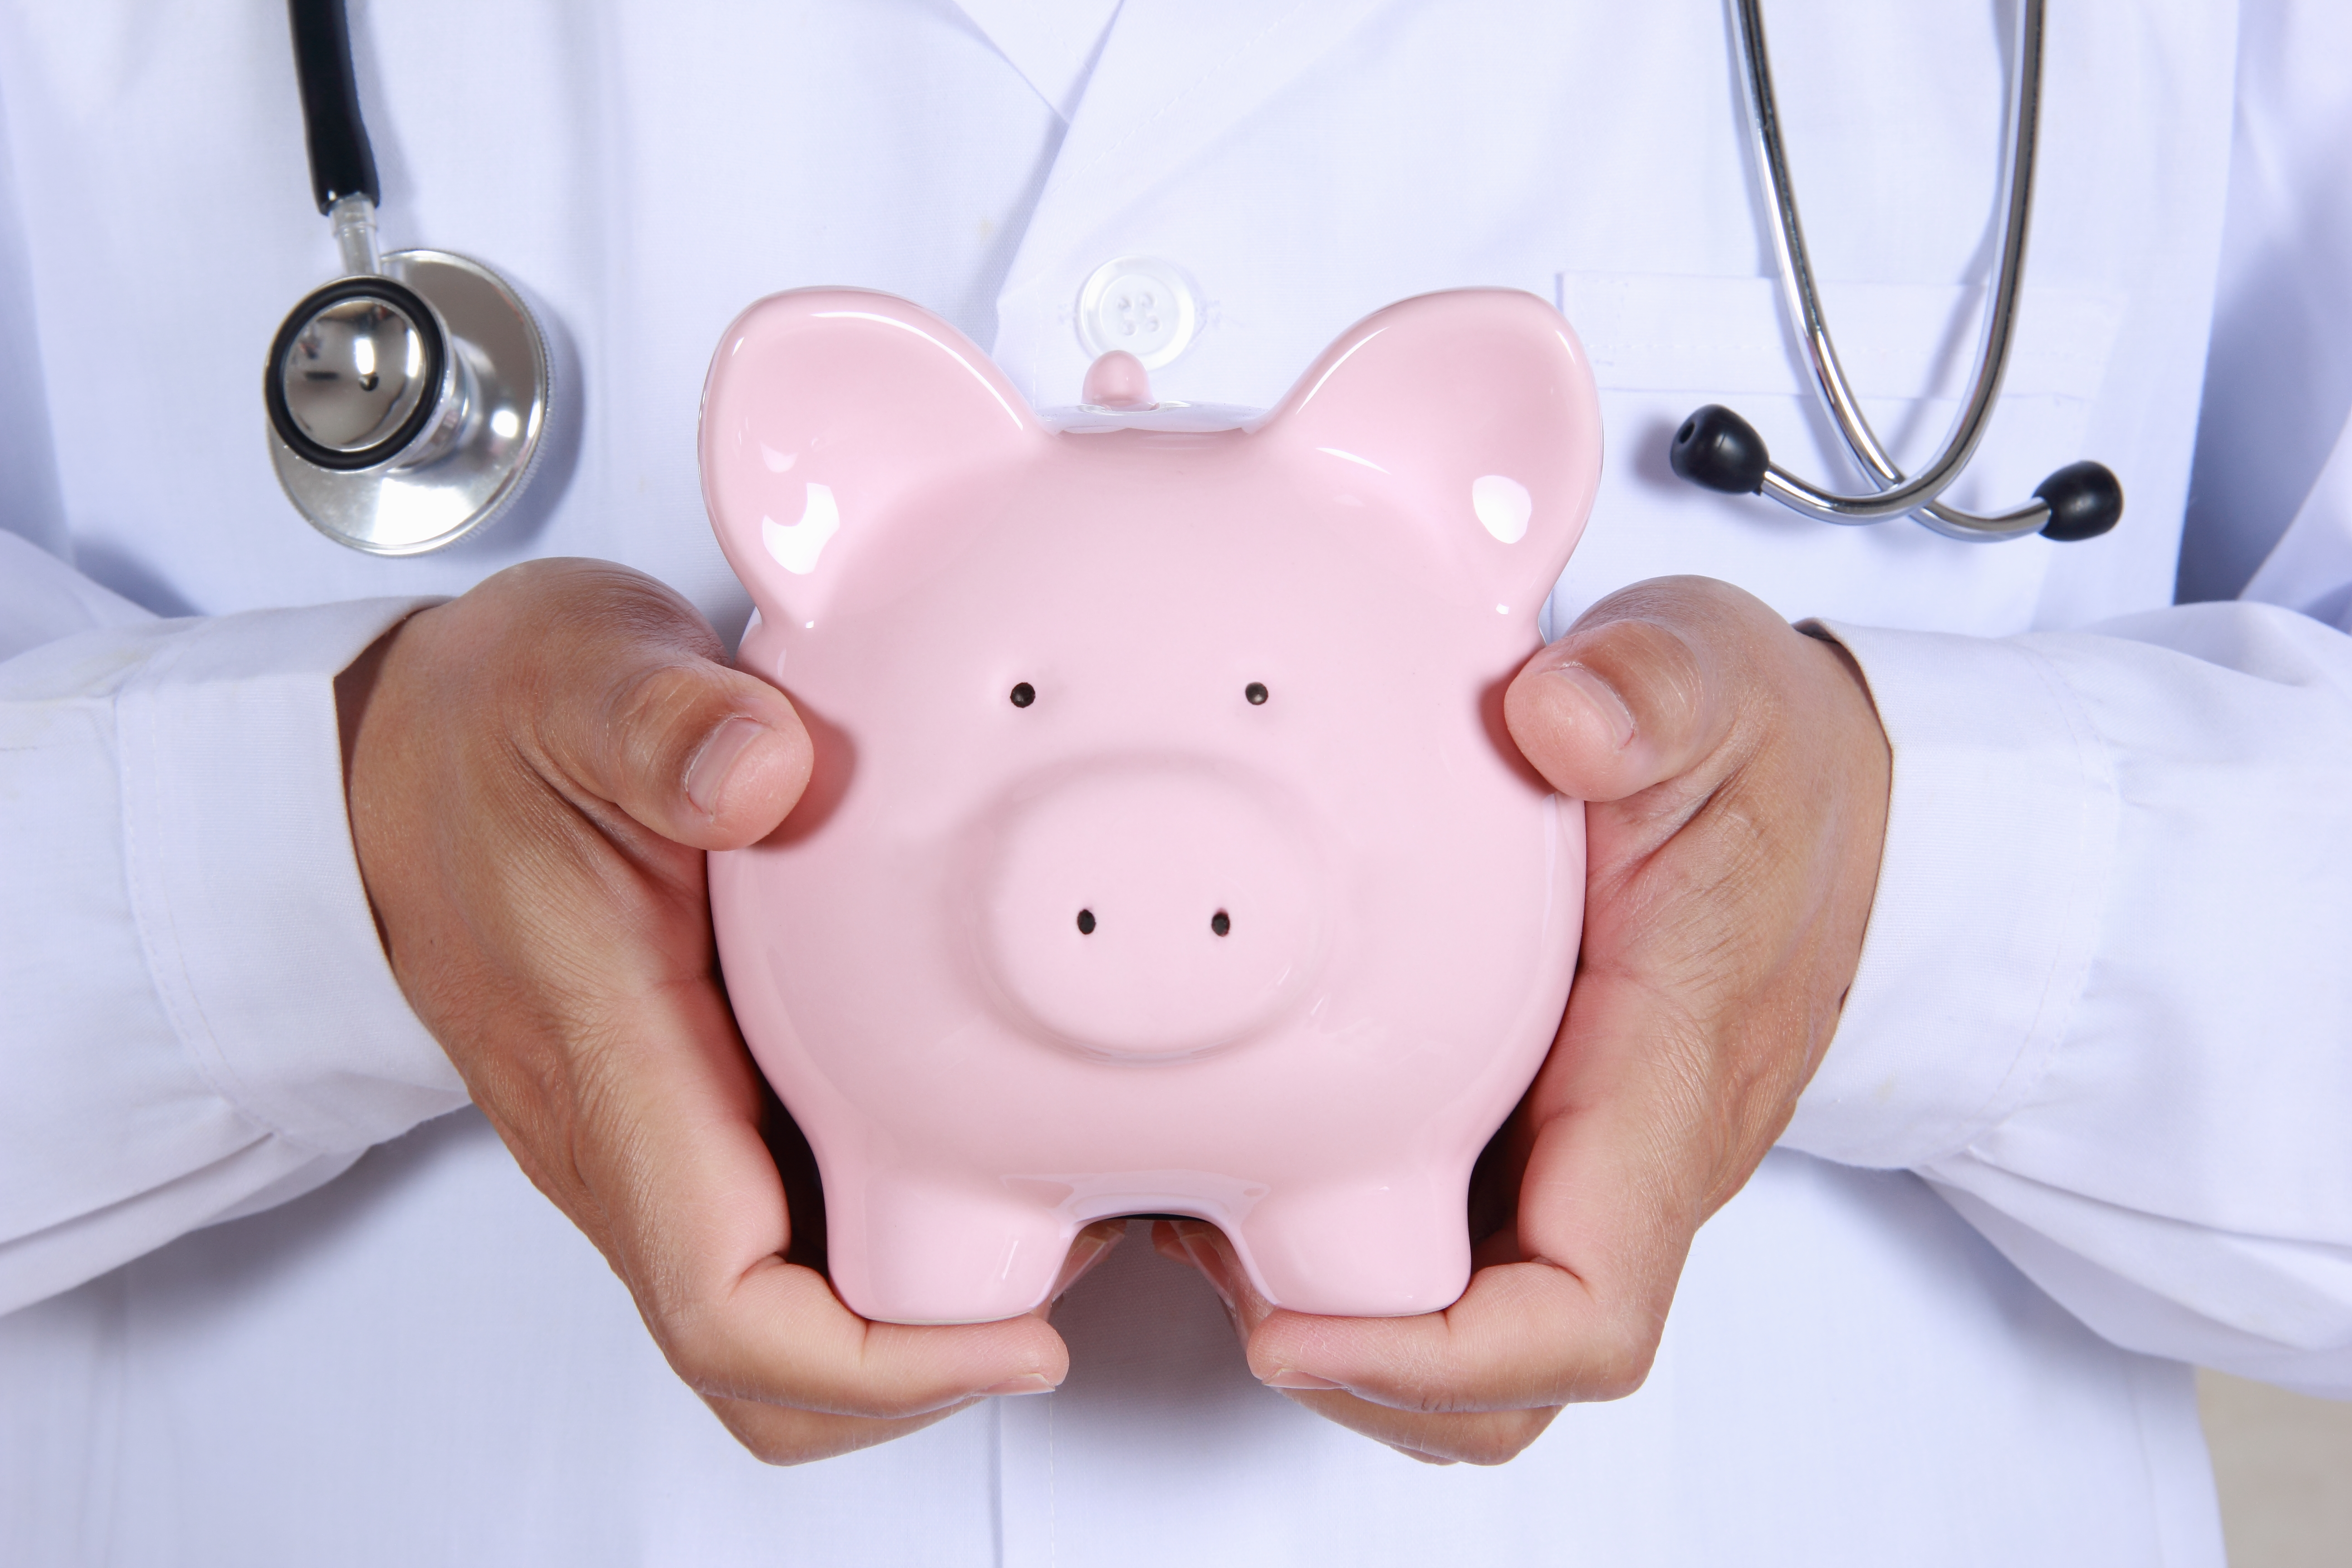 A person wearing a stethoscope holds a pink piggy bank.